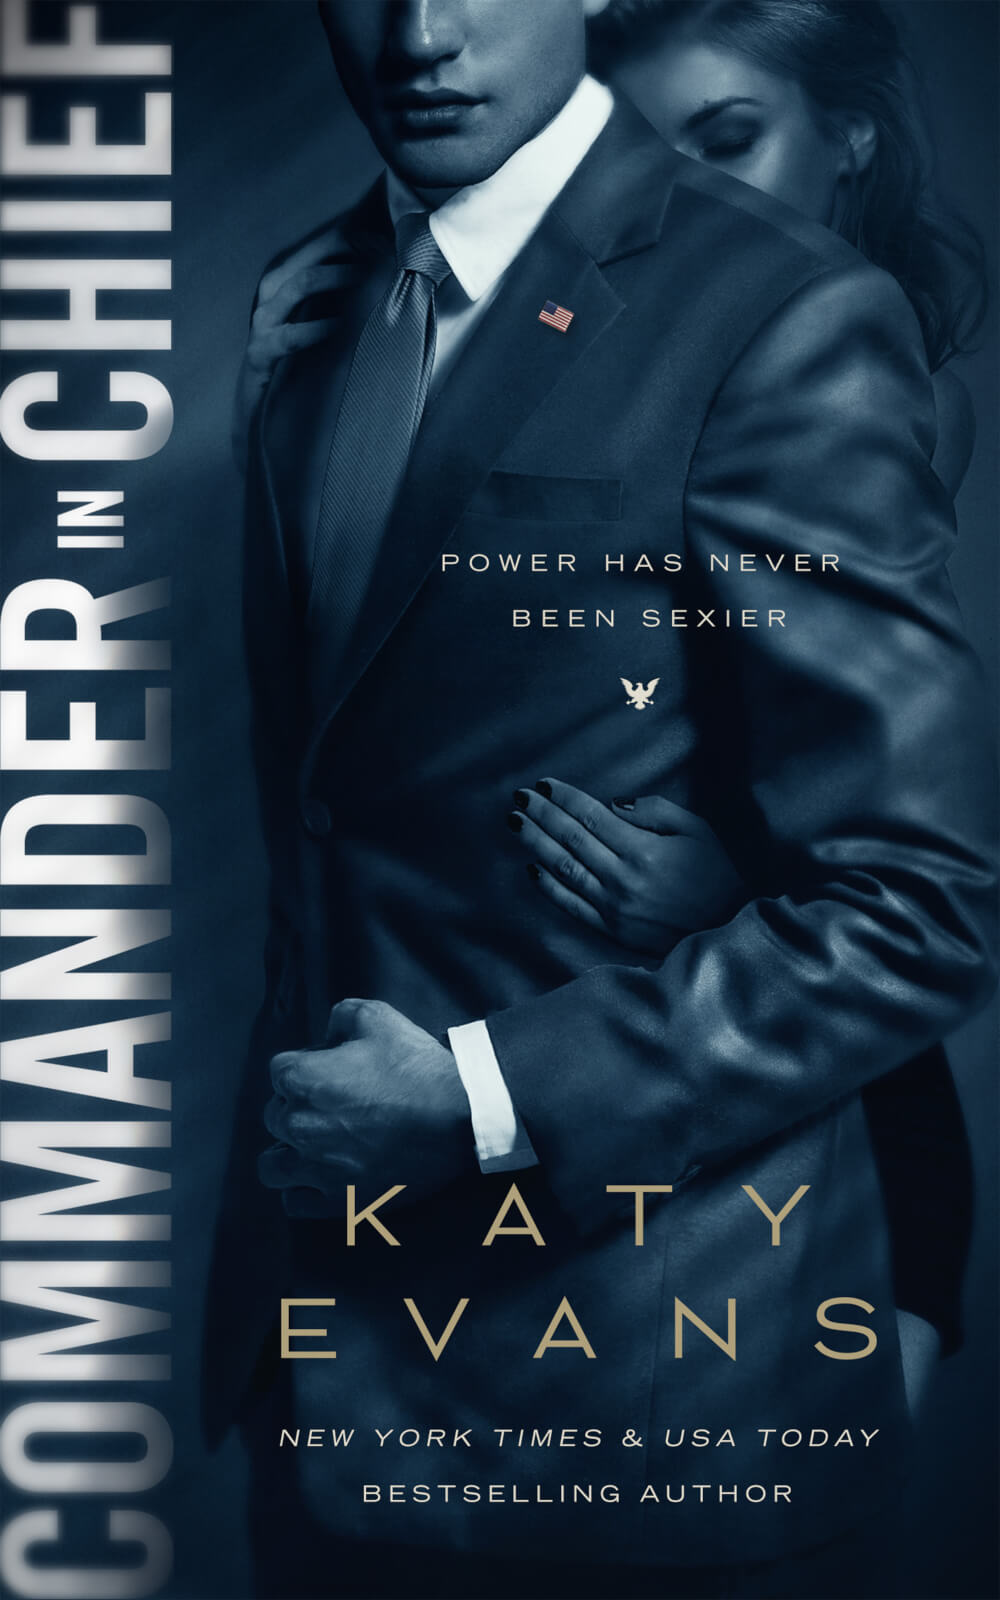 Blog Tour Stop & Review: Commander in Chief (White House #2) by Katy Evans